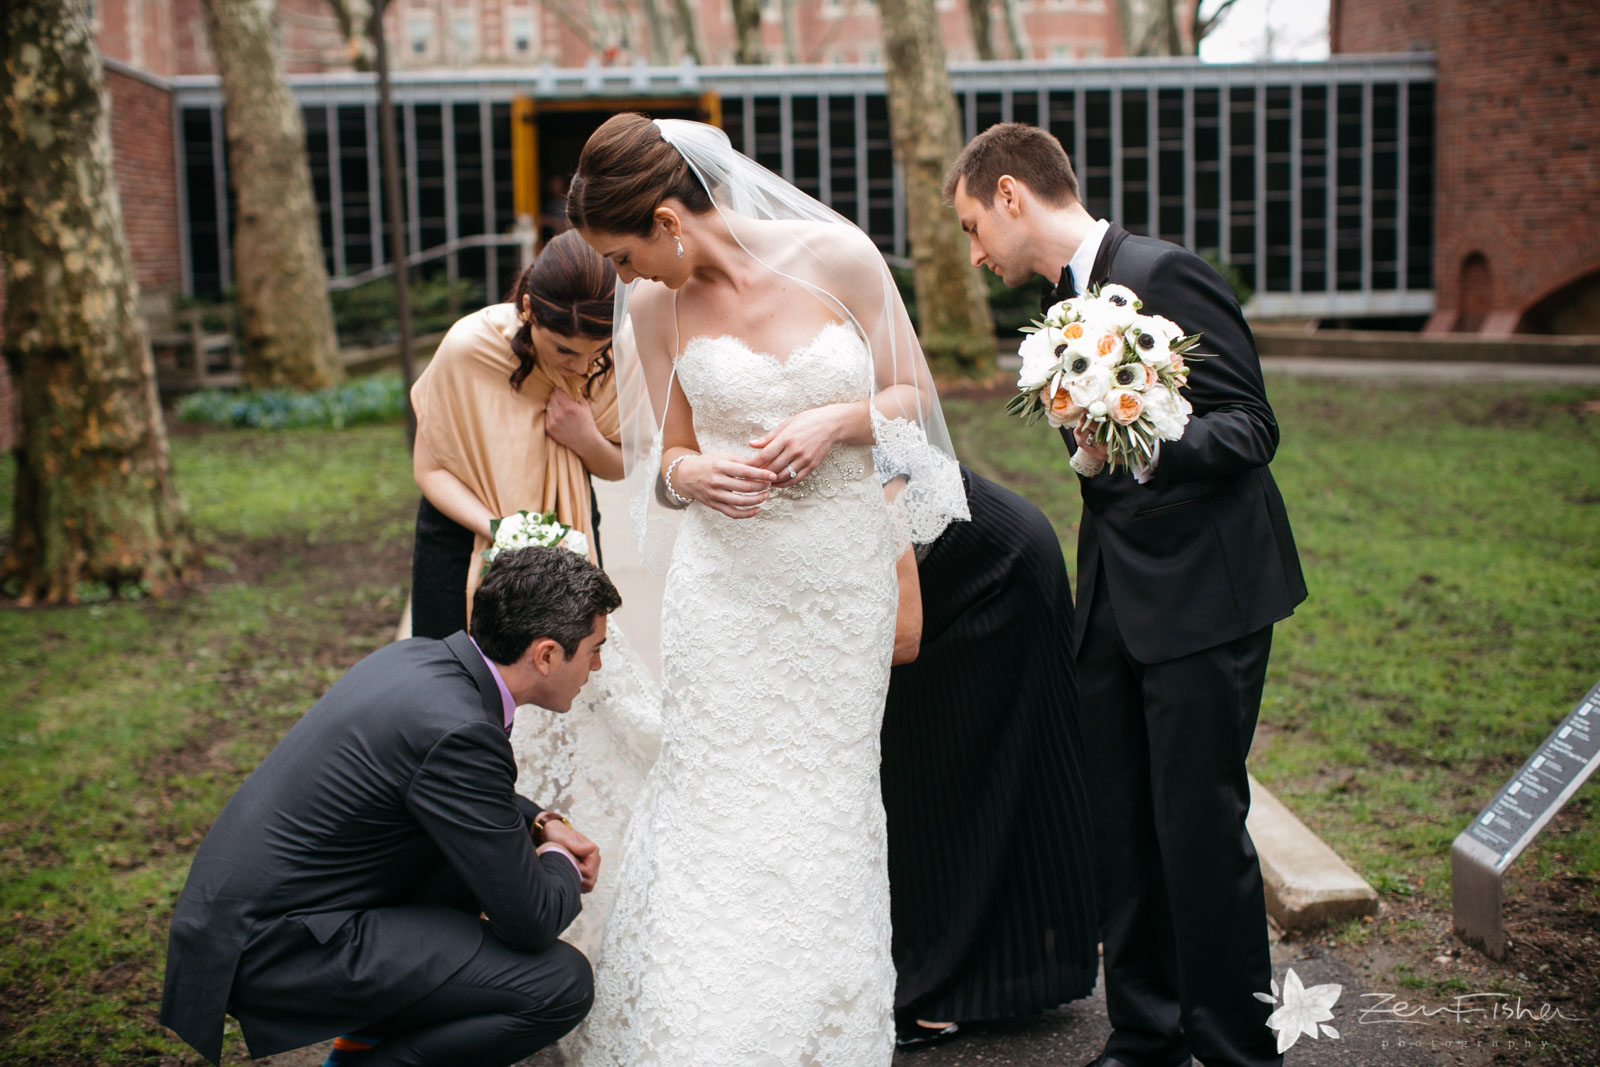 Candid of bridesmaids helping bustle bride's dress outside the church on the rain-soaked path.